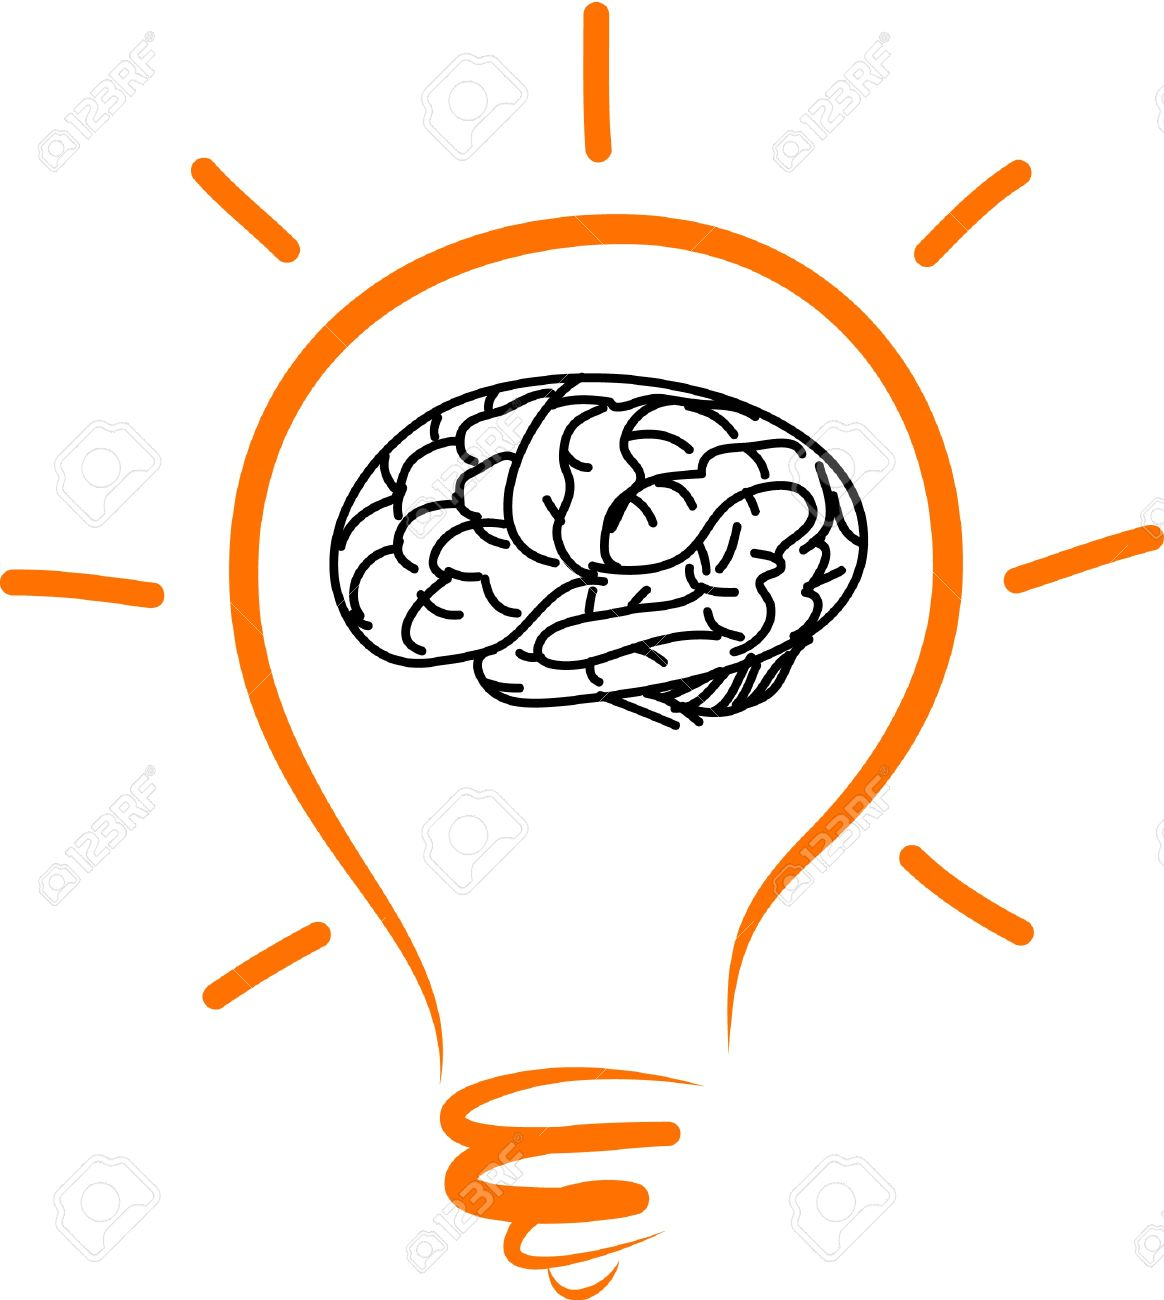 1164x1300 Drawing Light Bulb Brain In Side Royalty Free Cliparts, Vectors